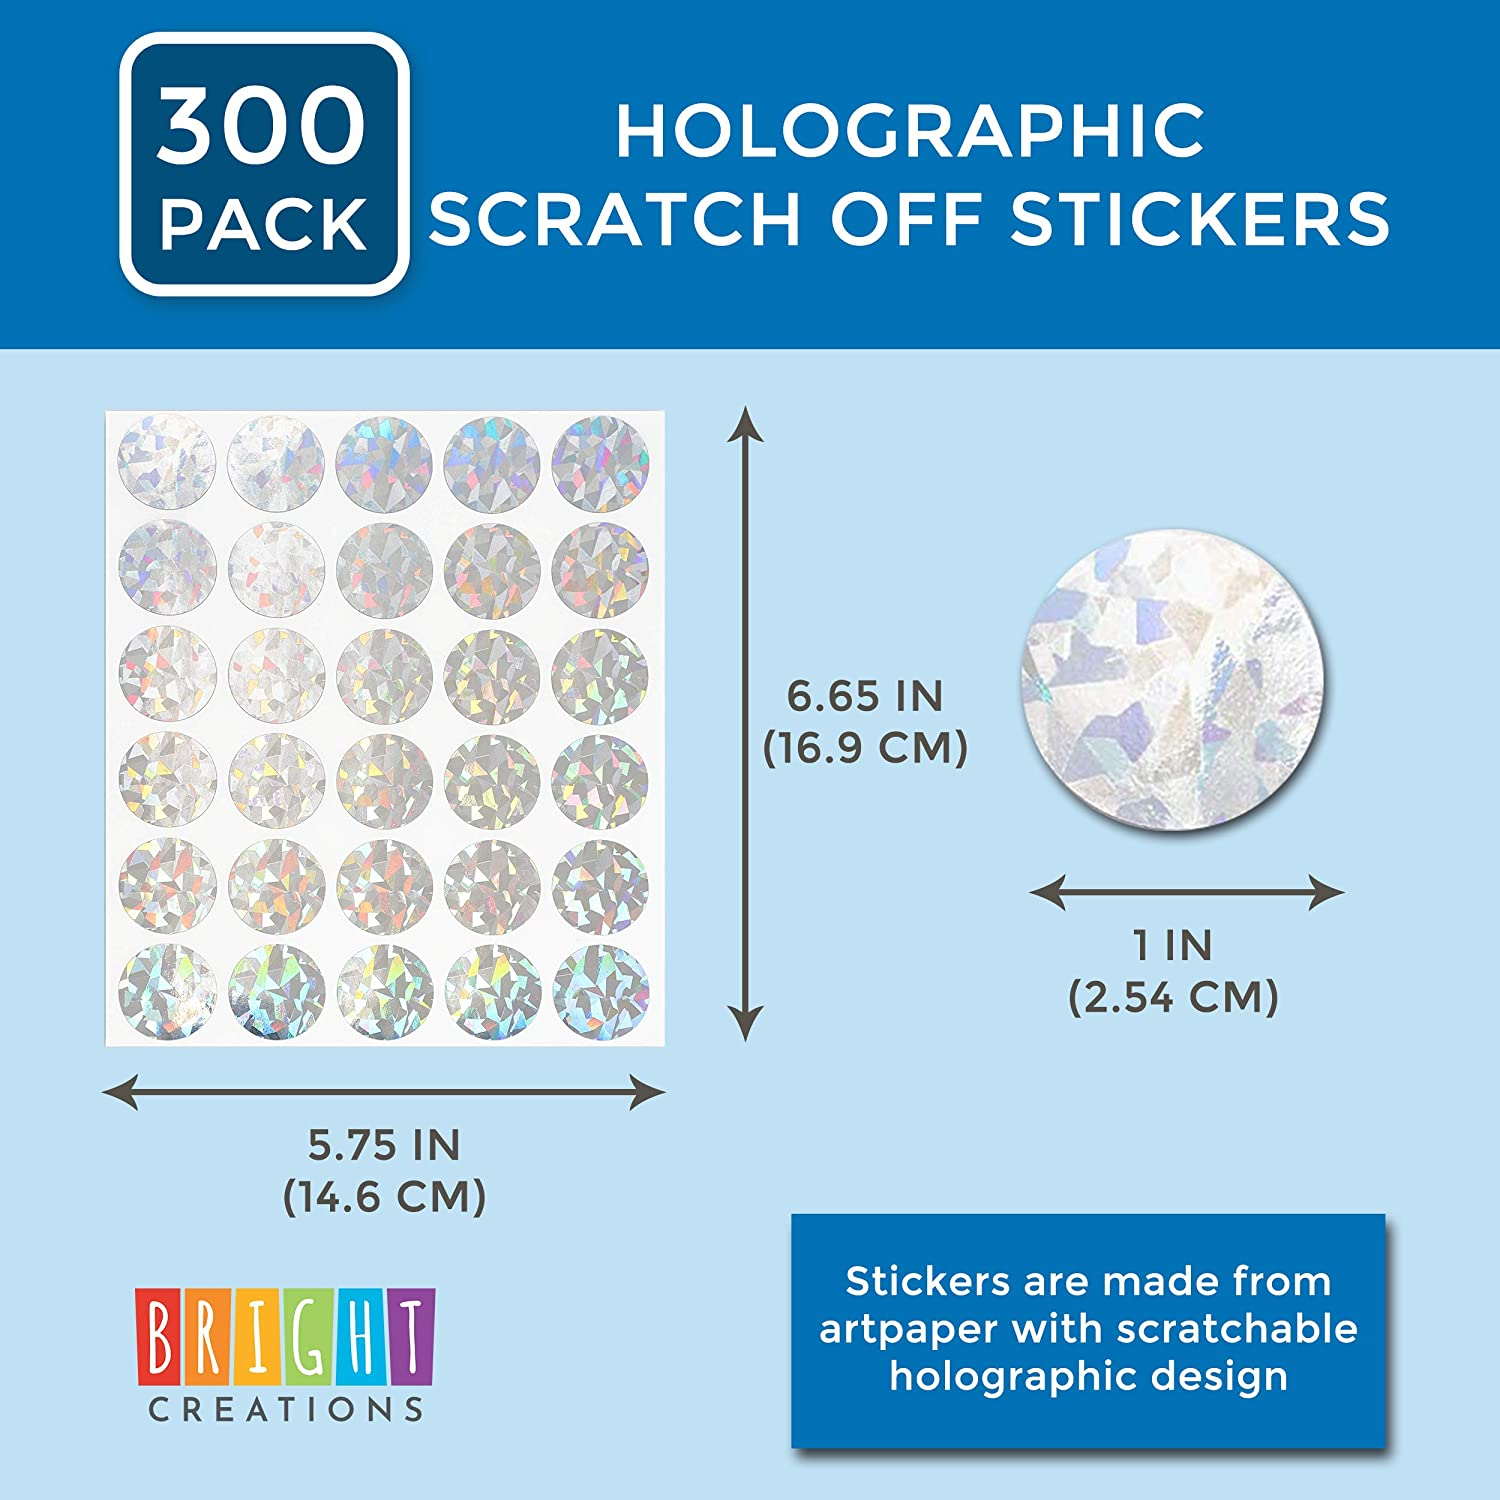 300 Pack,1 in. Bright Creations Holographic Scratch Off Stickers